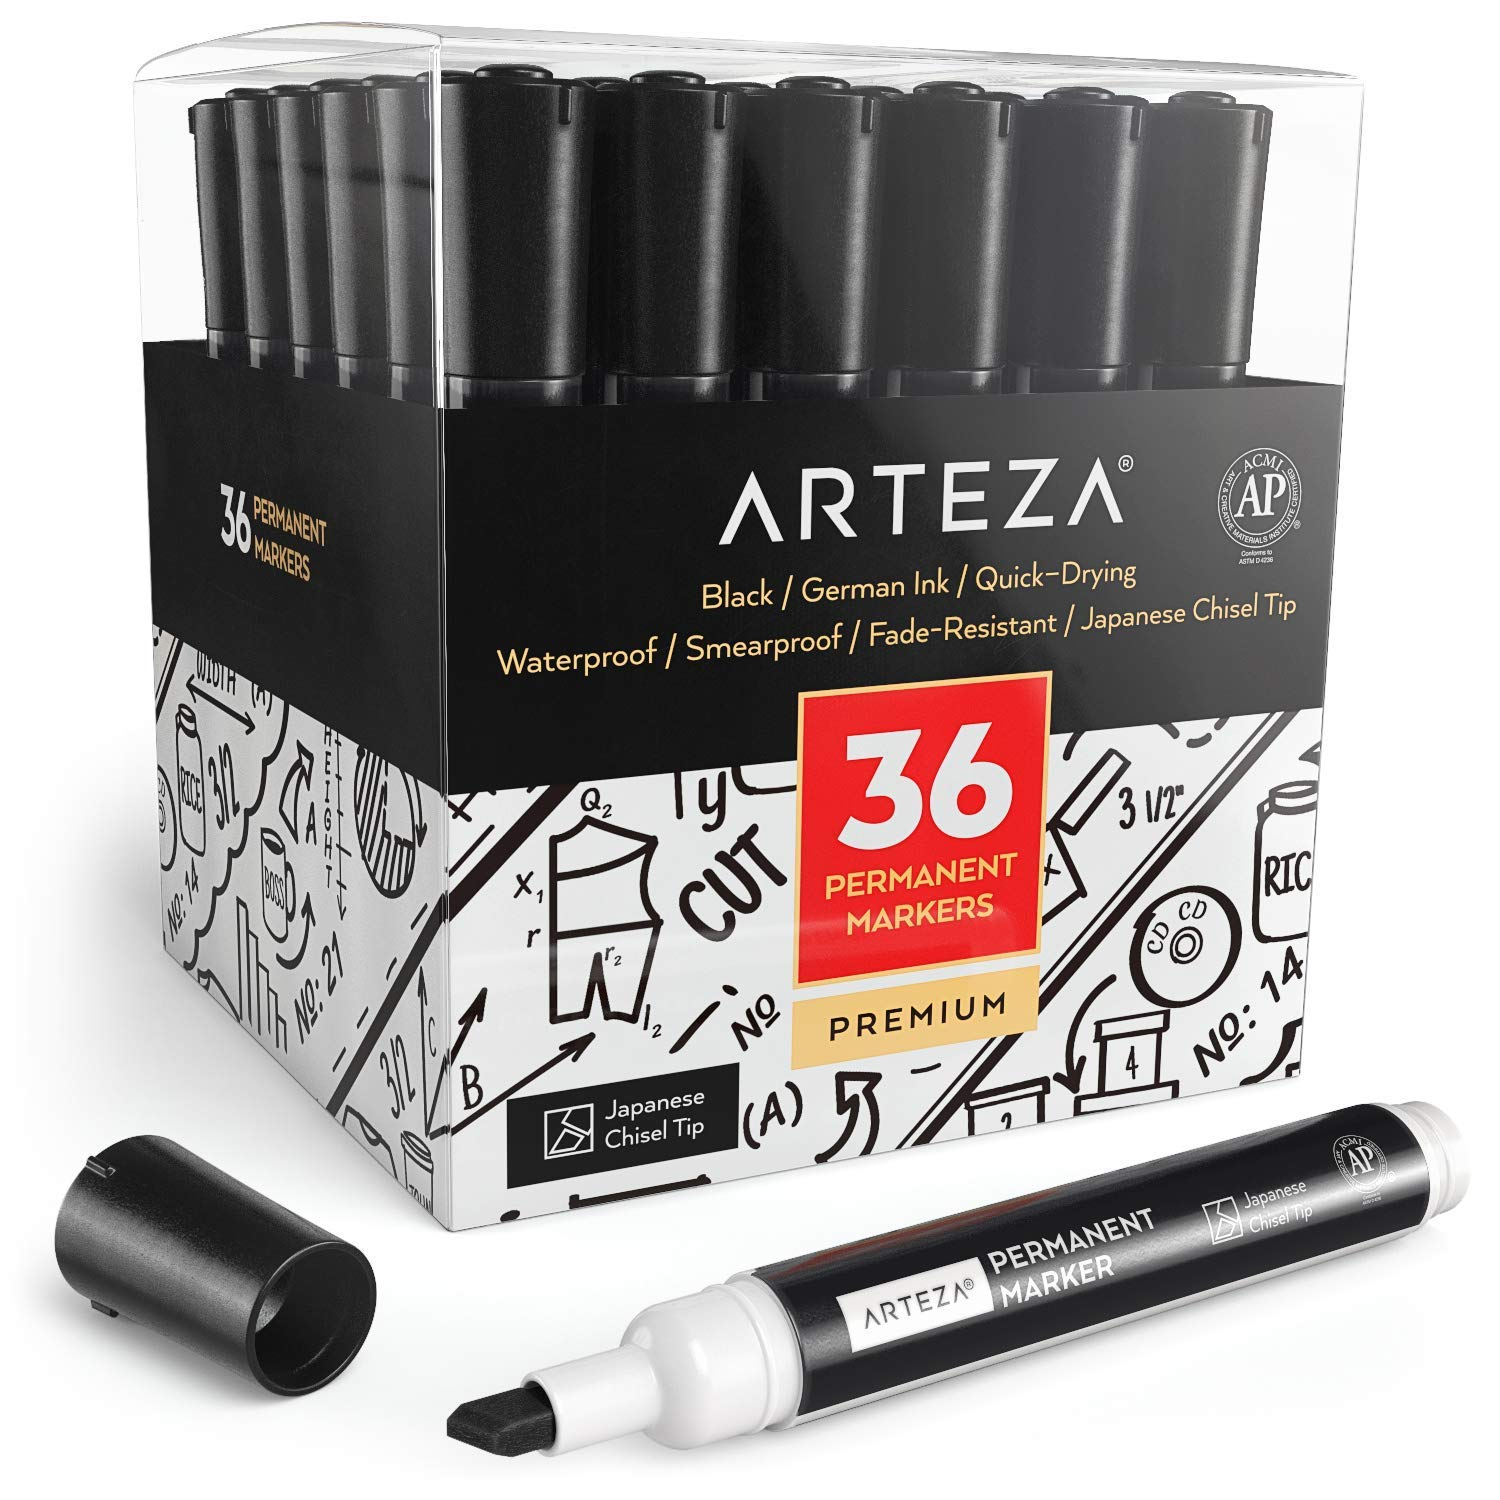 ARTEZA Permanent Markers Set of 36 (Black, Chisel Tip) - Waterproof Markers - Premium Smear Proof Pens - Waterproof - Quick Drying